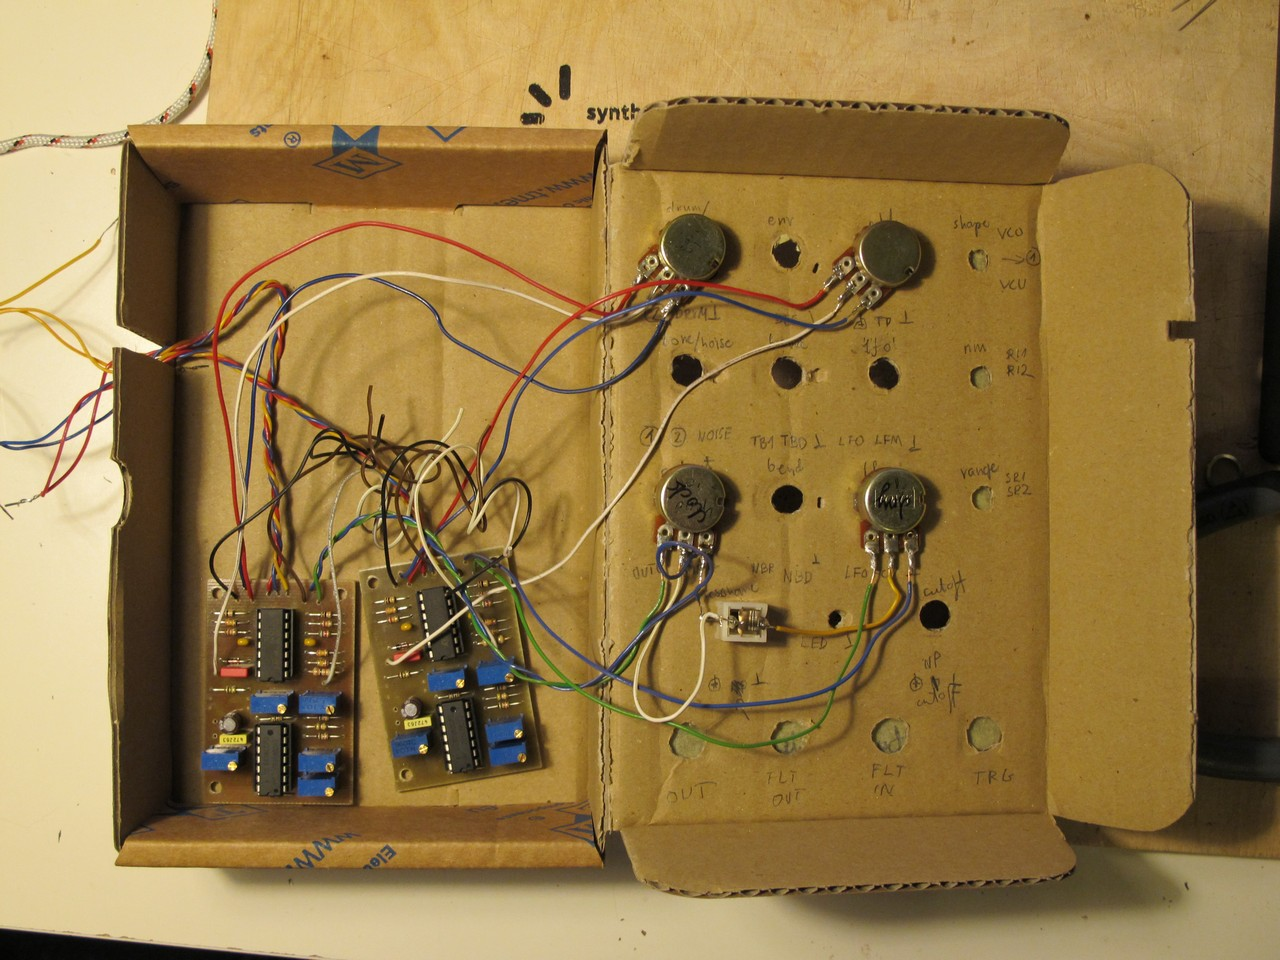 binaural-beat-generator-prototype-syntherjack